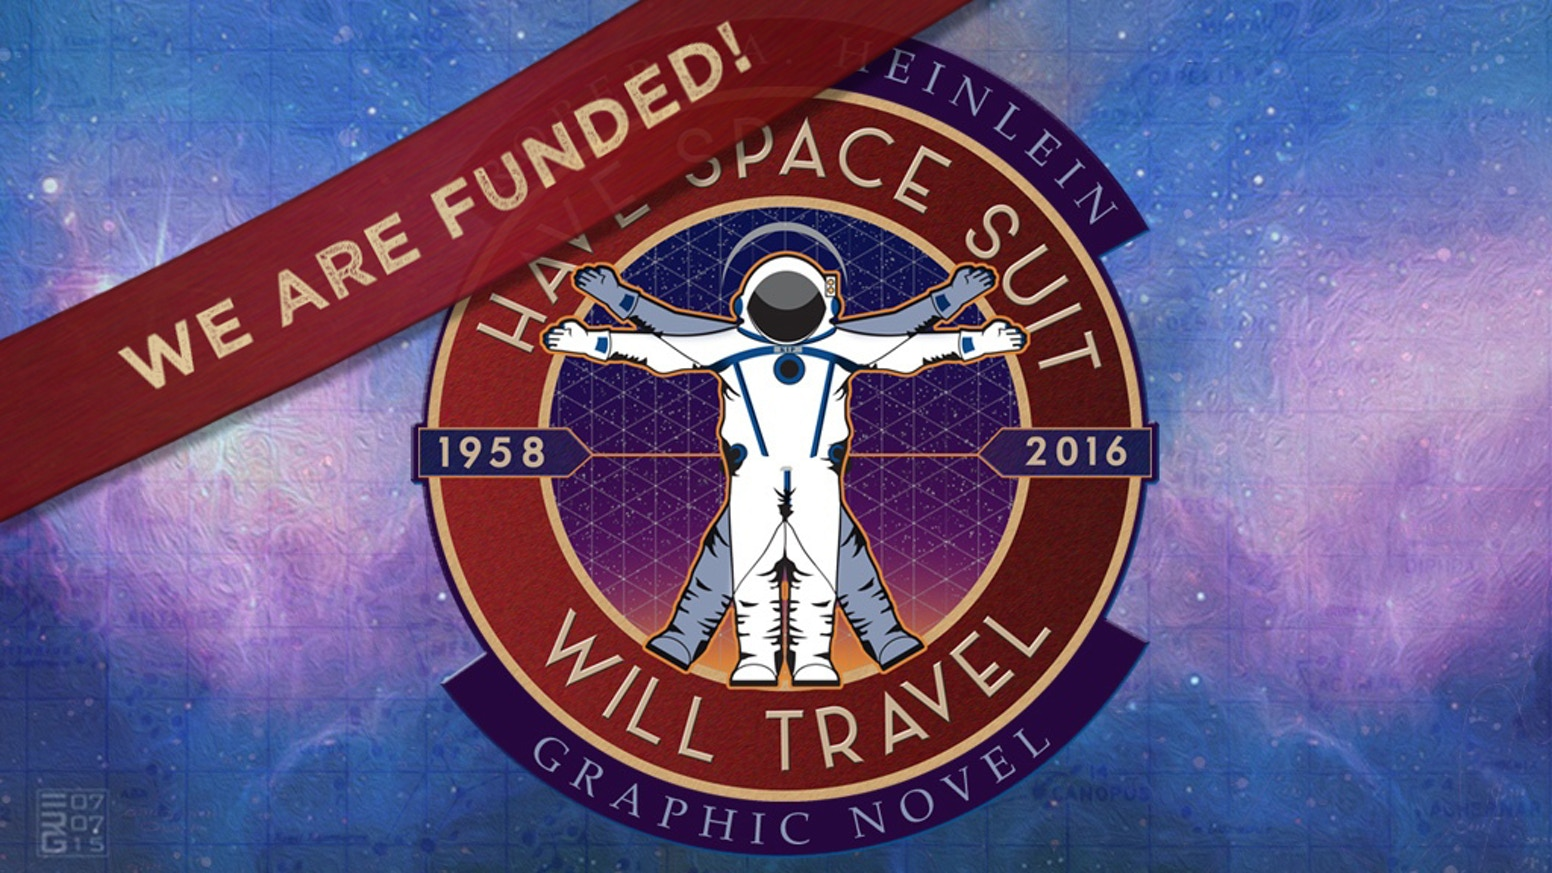 Robert Heinlein's Have Space Suit Will Travel Graphic ...